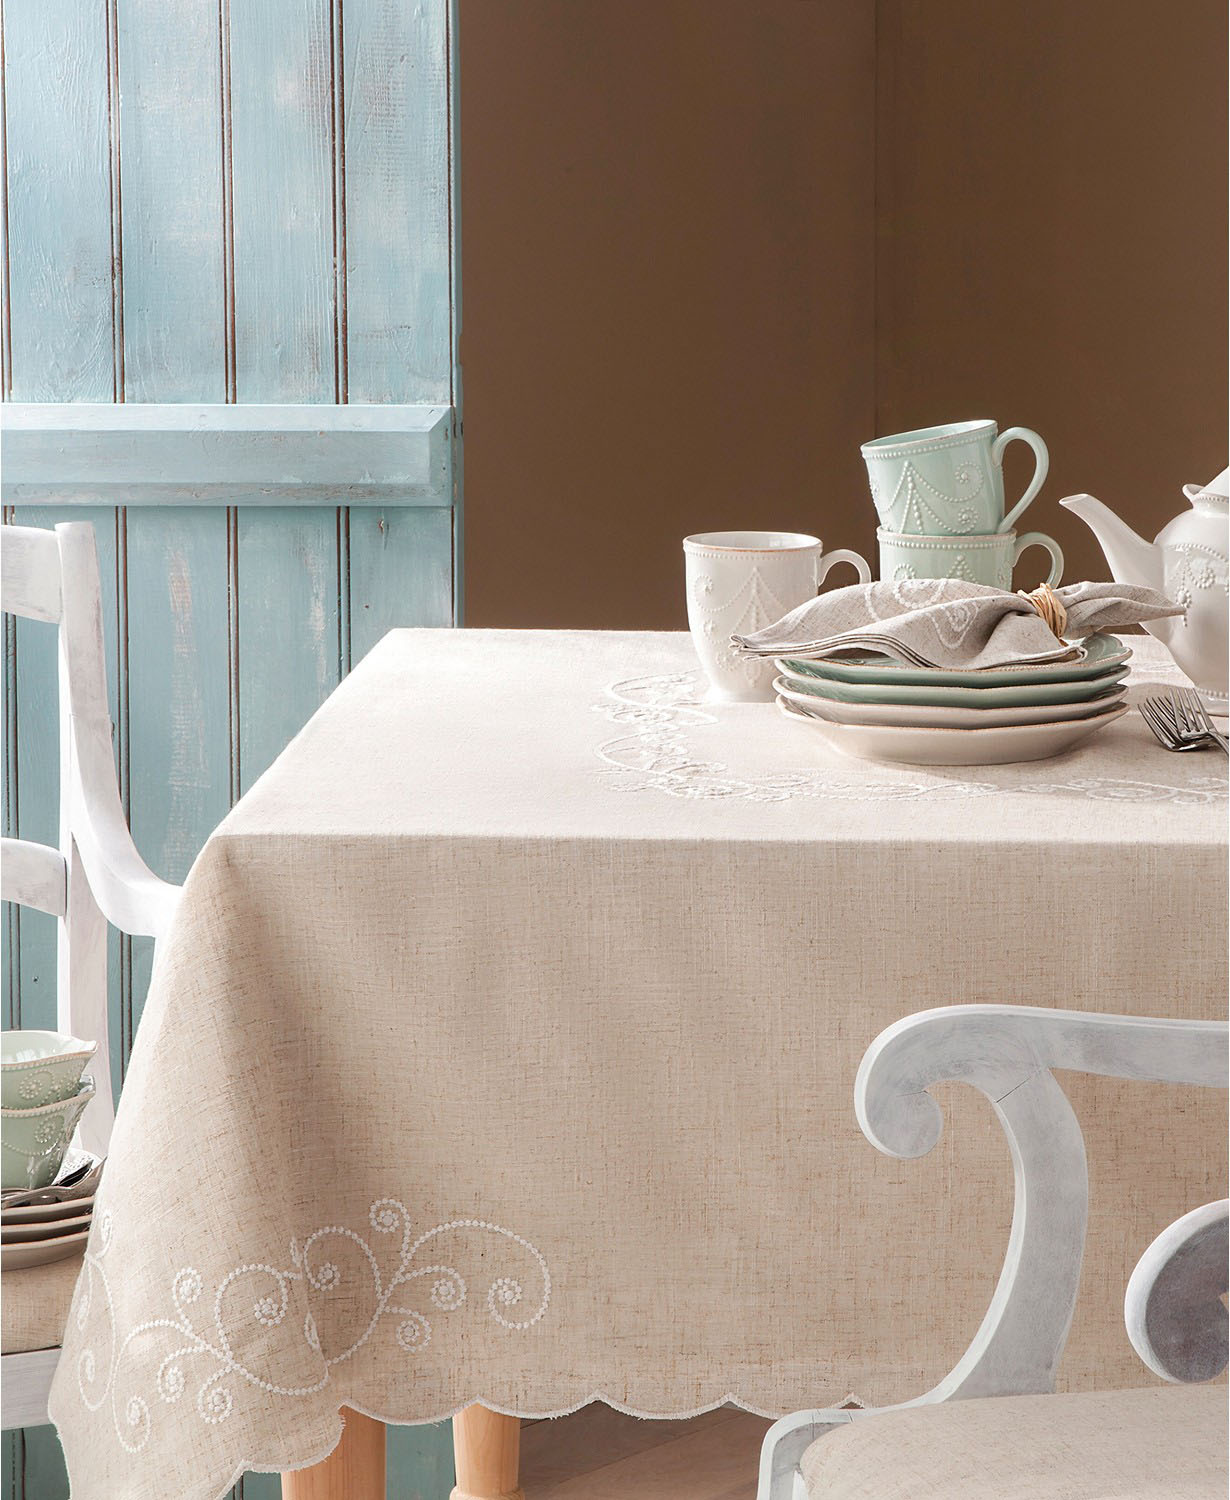 Lenox Embroidered Tablecloth